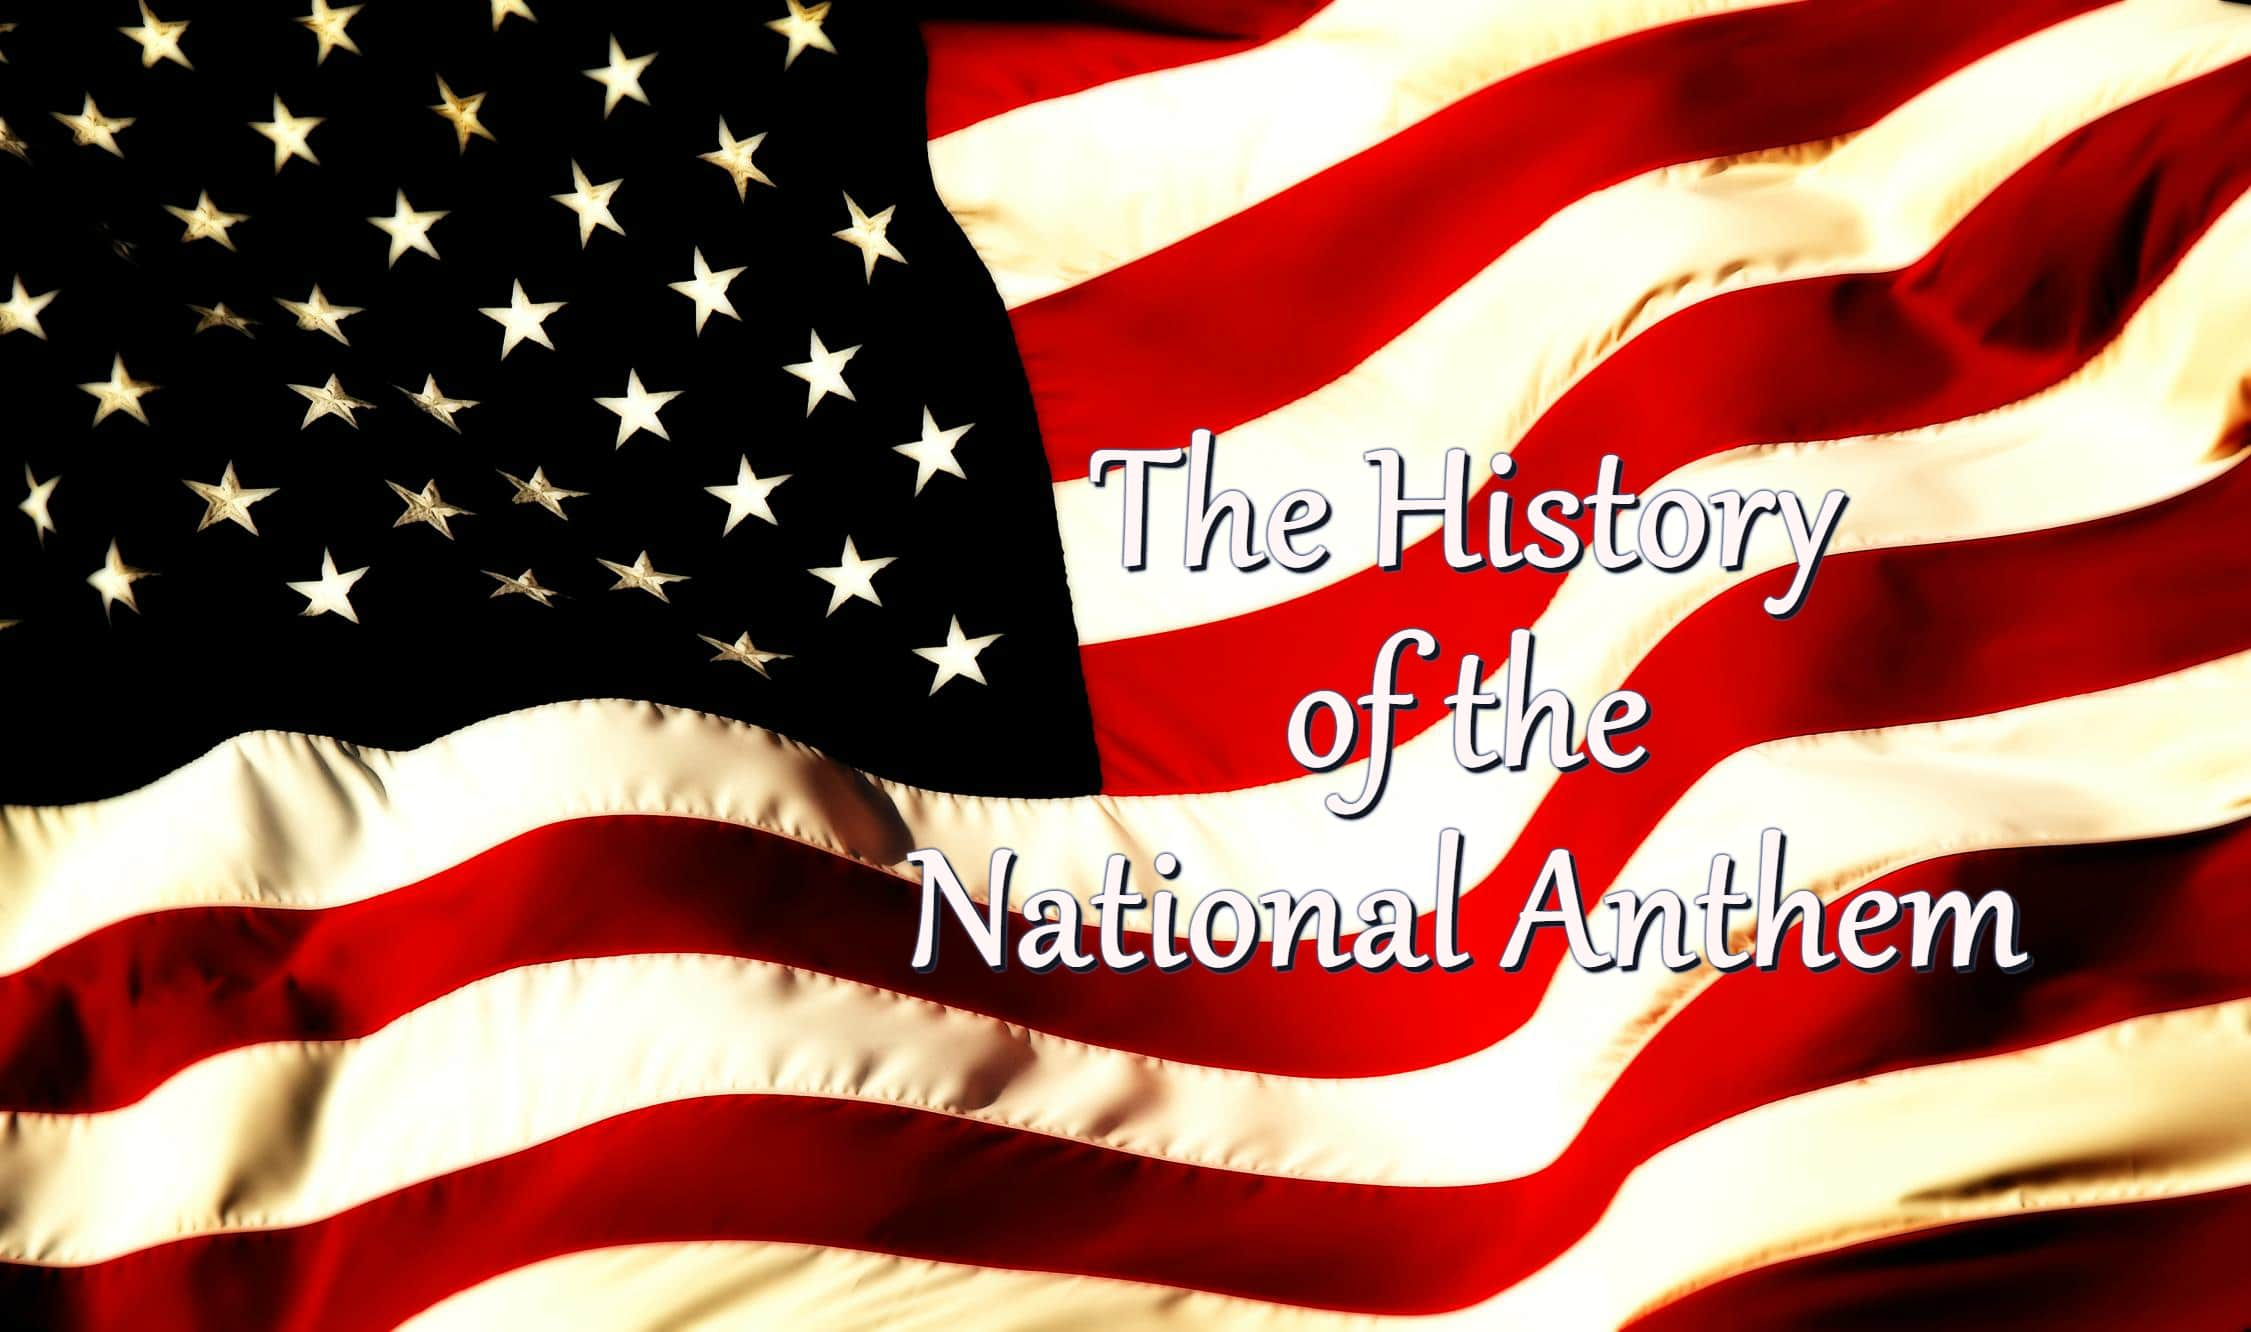 The History of the National Anthem